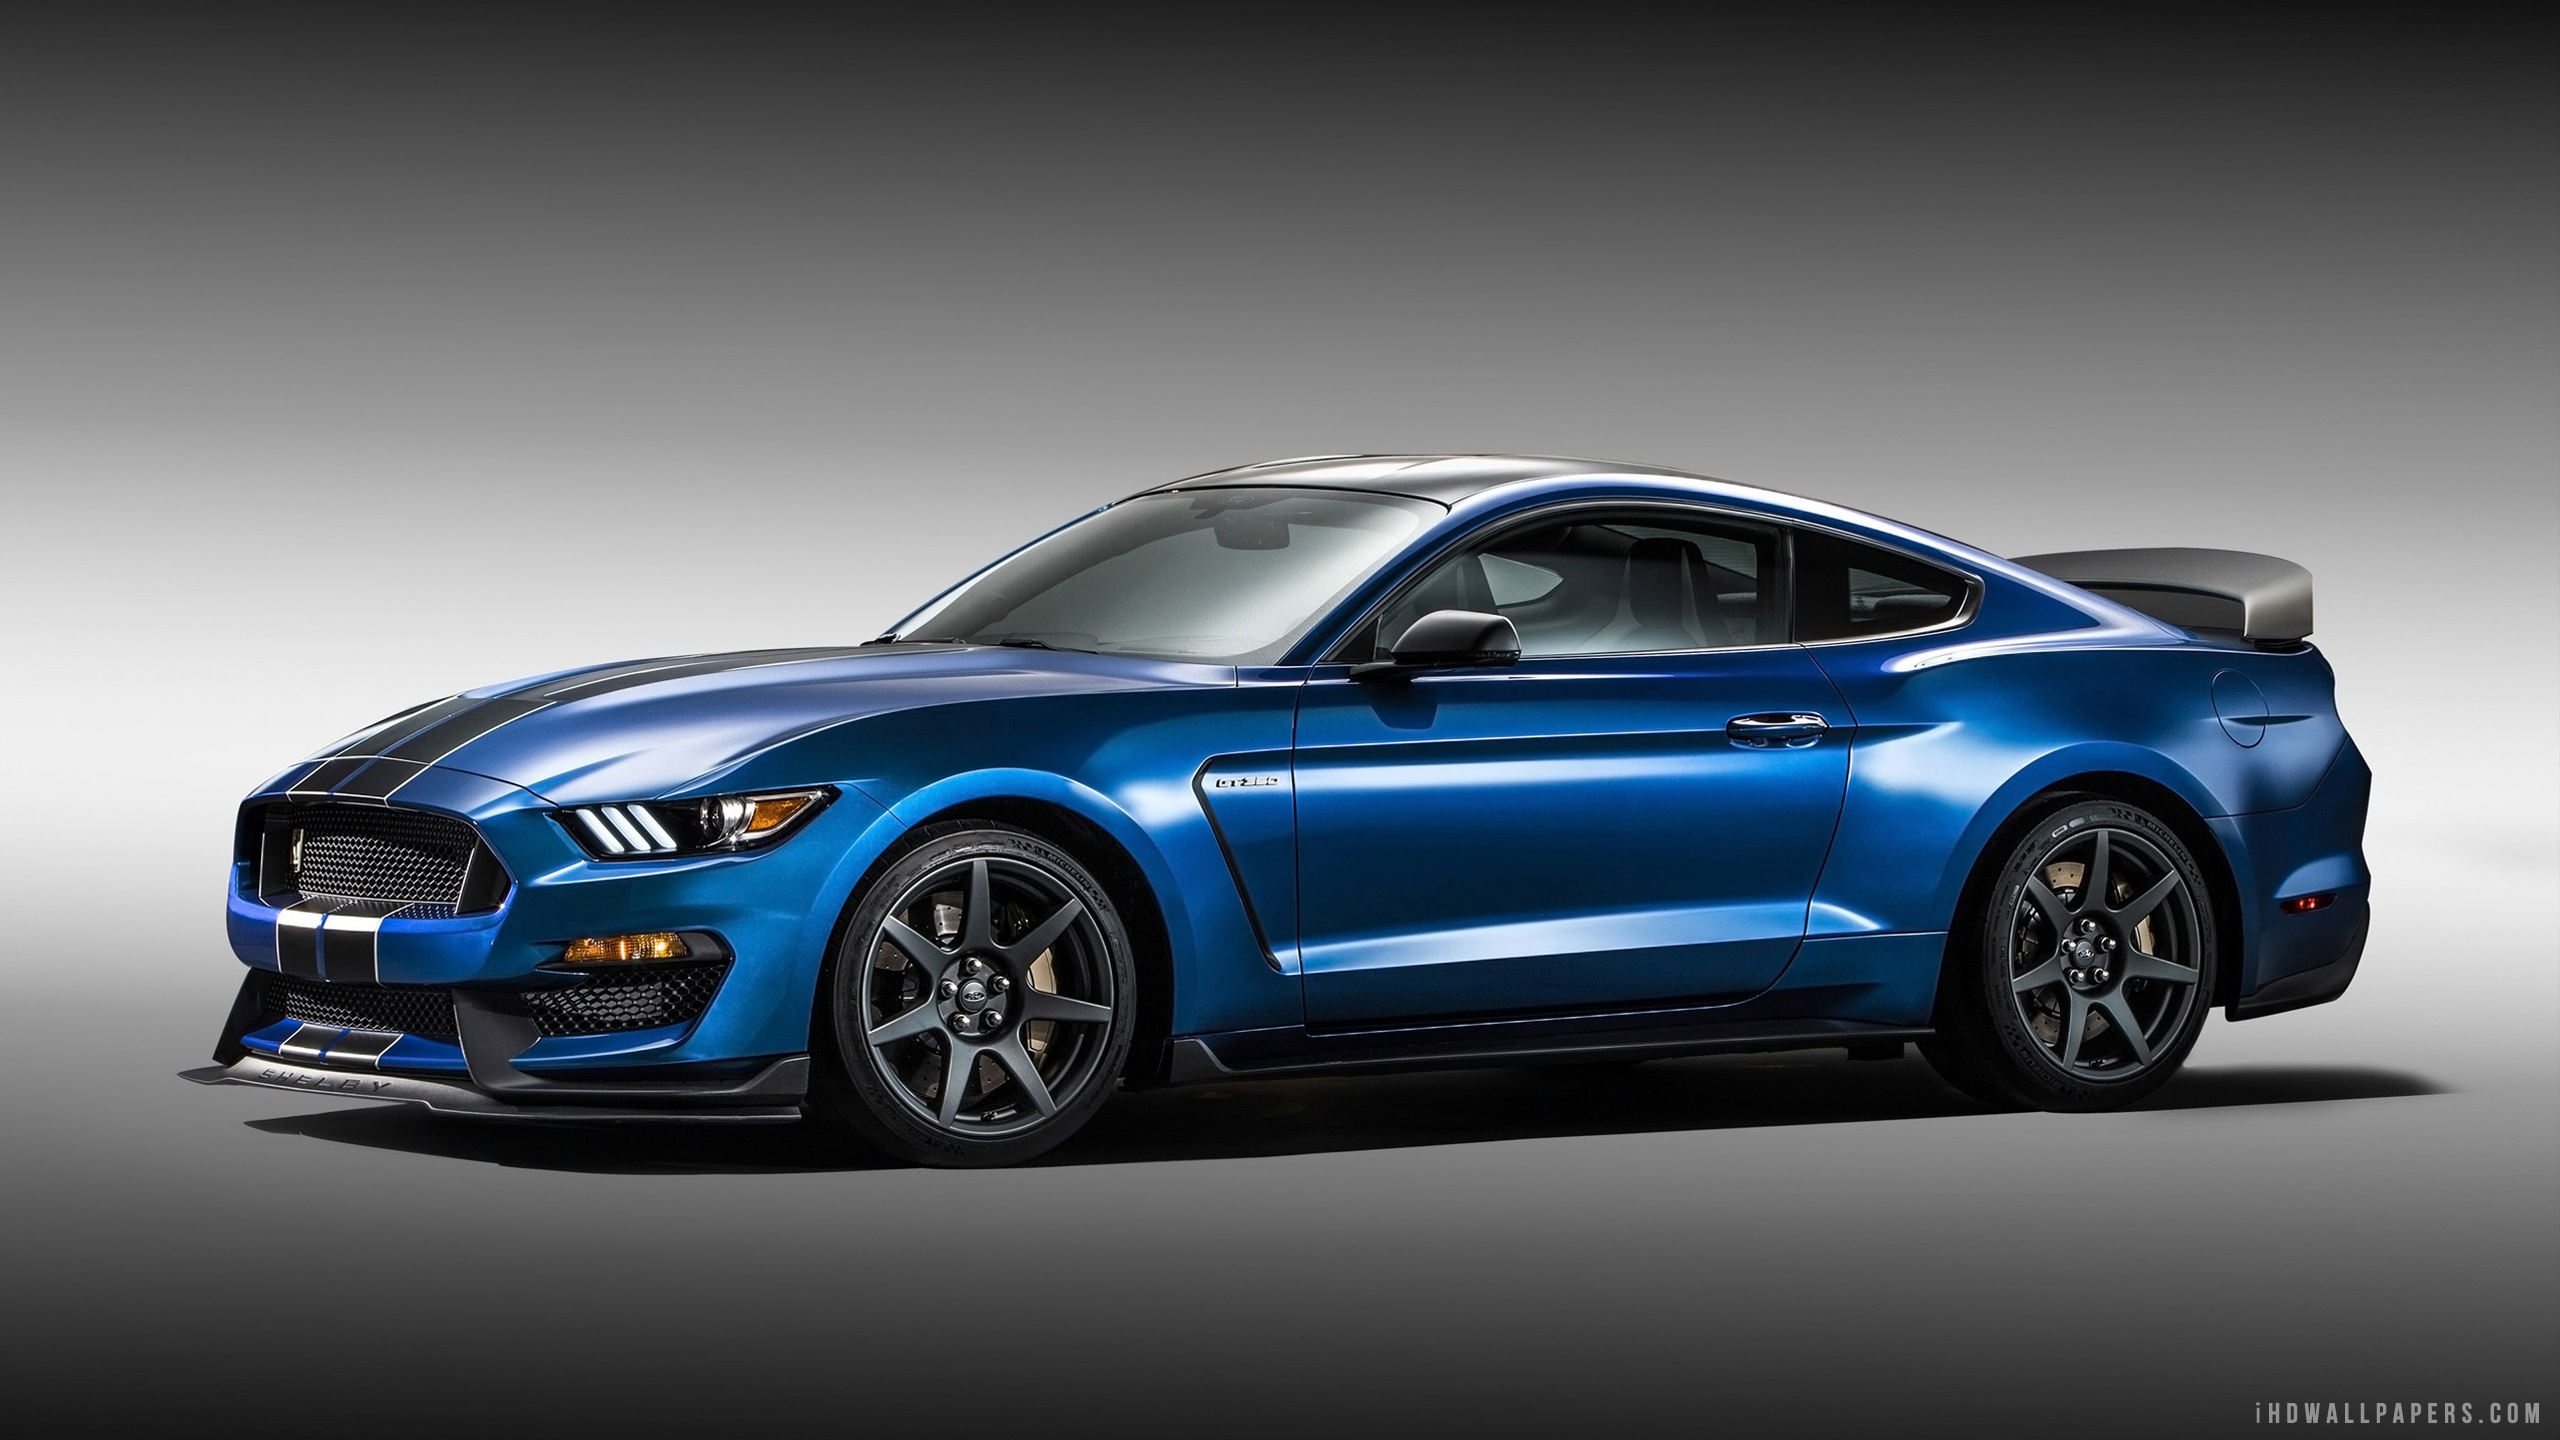 2016 Ford Mustang Shelby GT350 HD Wallpaper   iHD Wallpapers 2560x1440